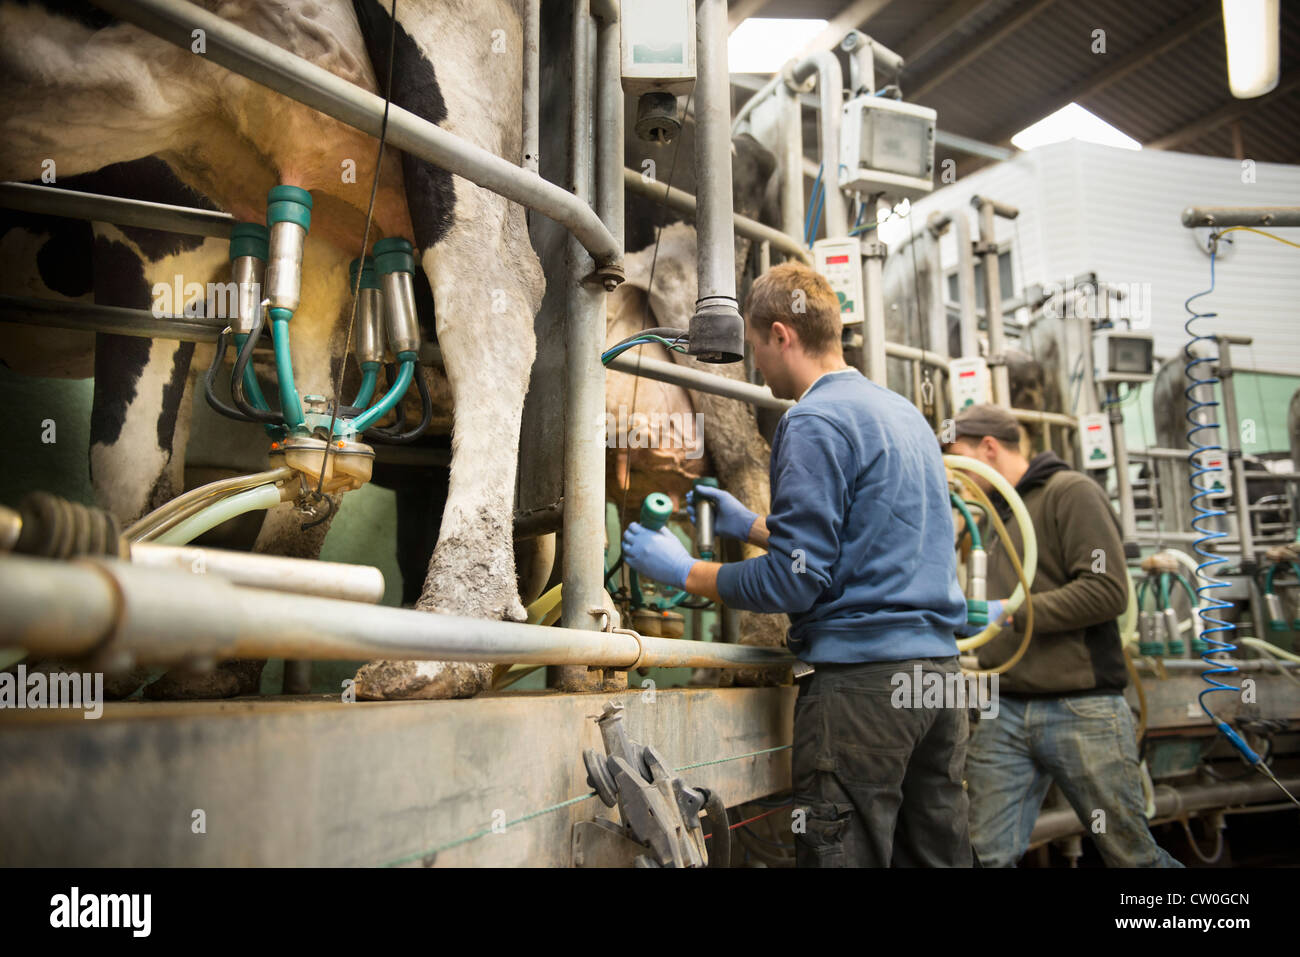 Farmer hooking cows to milking machine - Stock Image